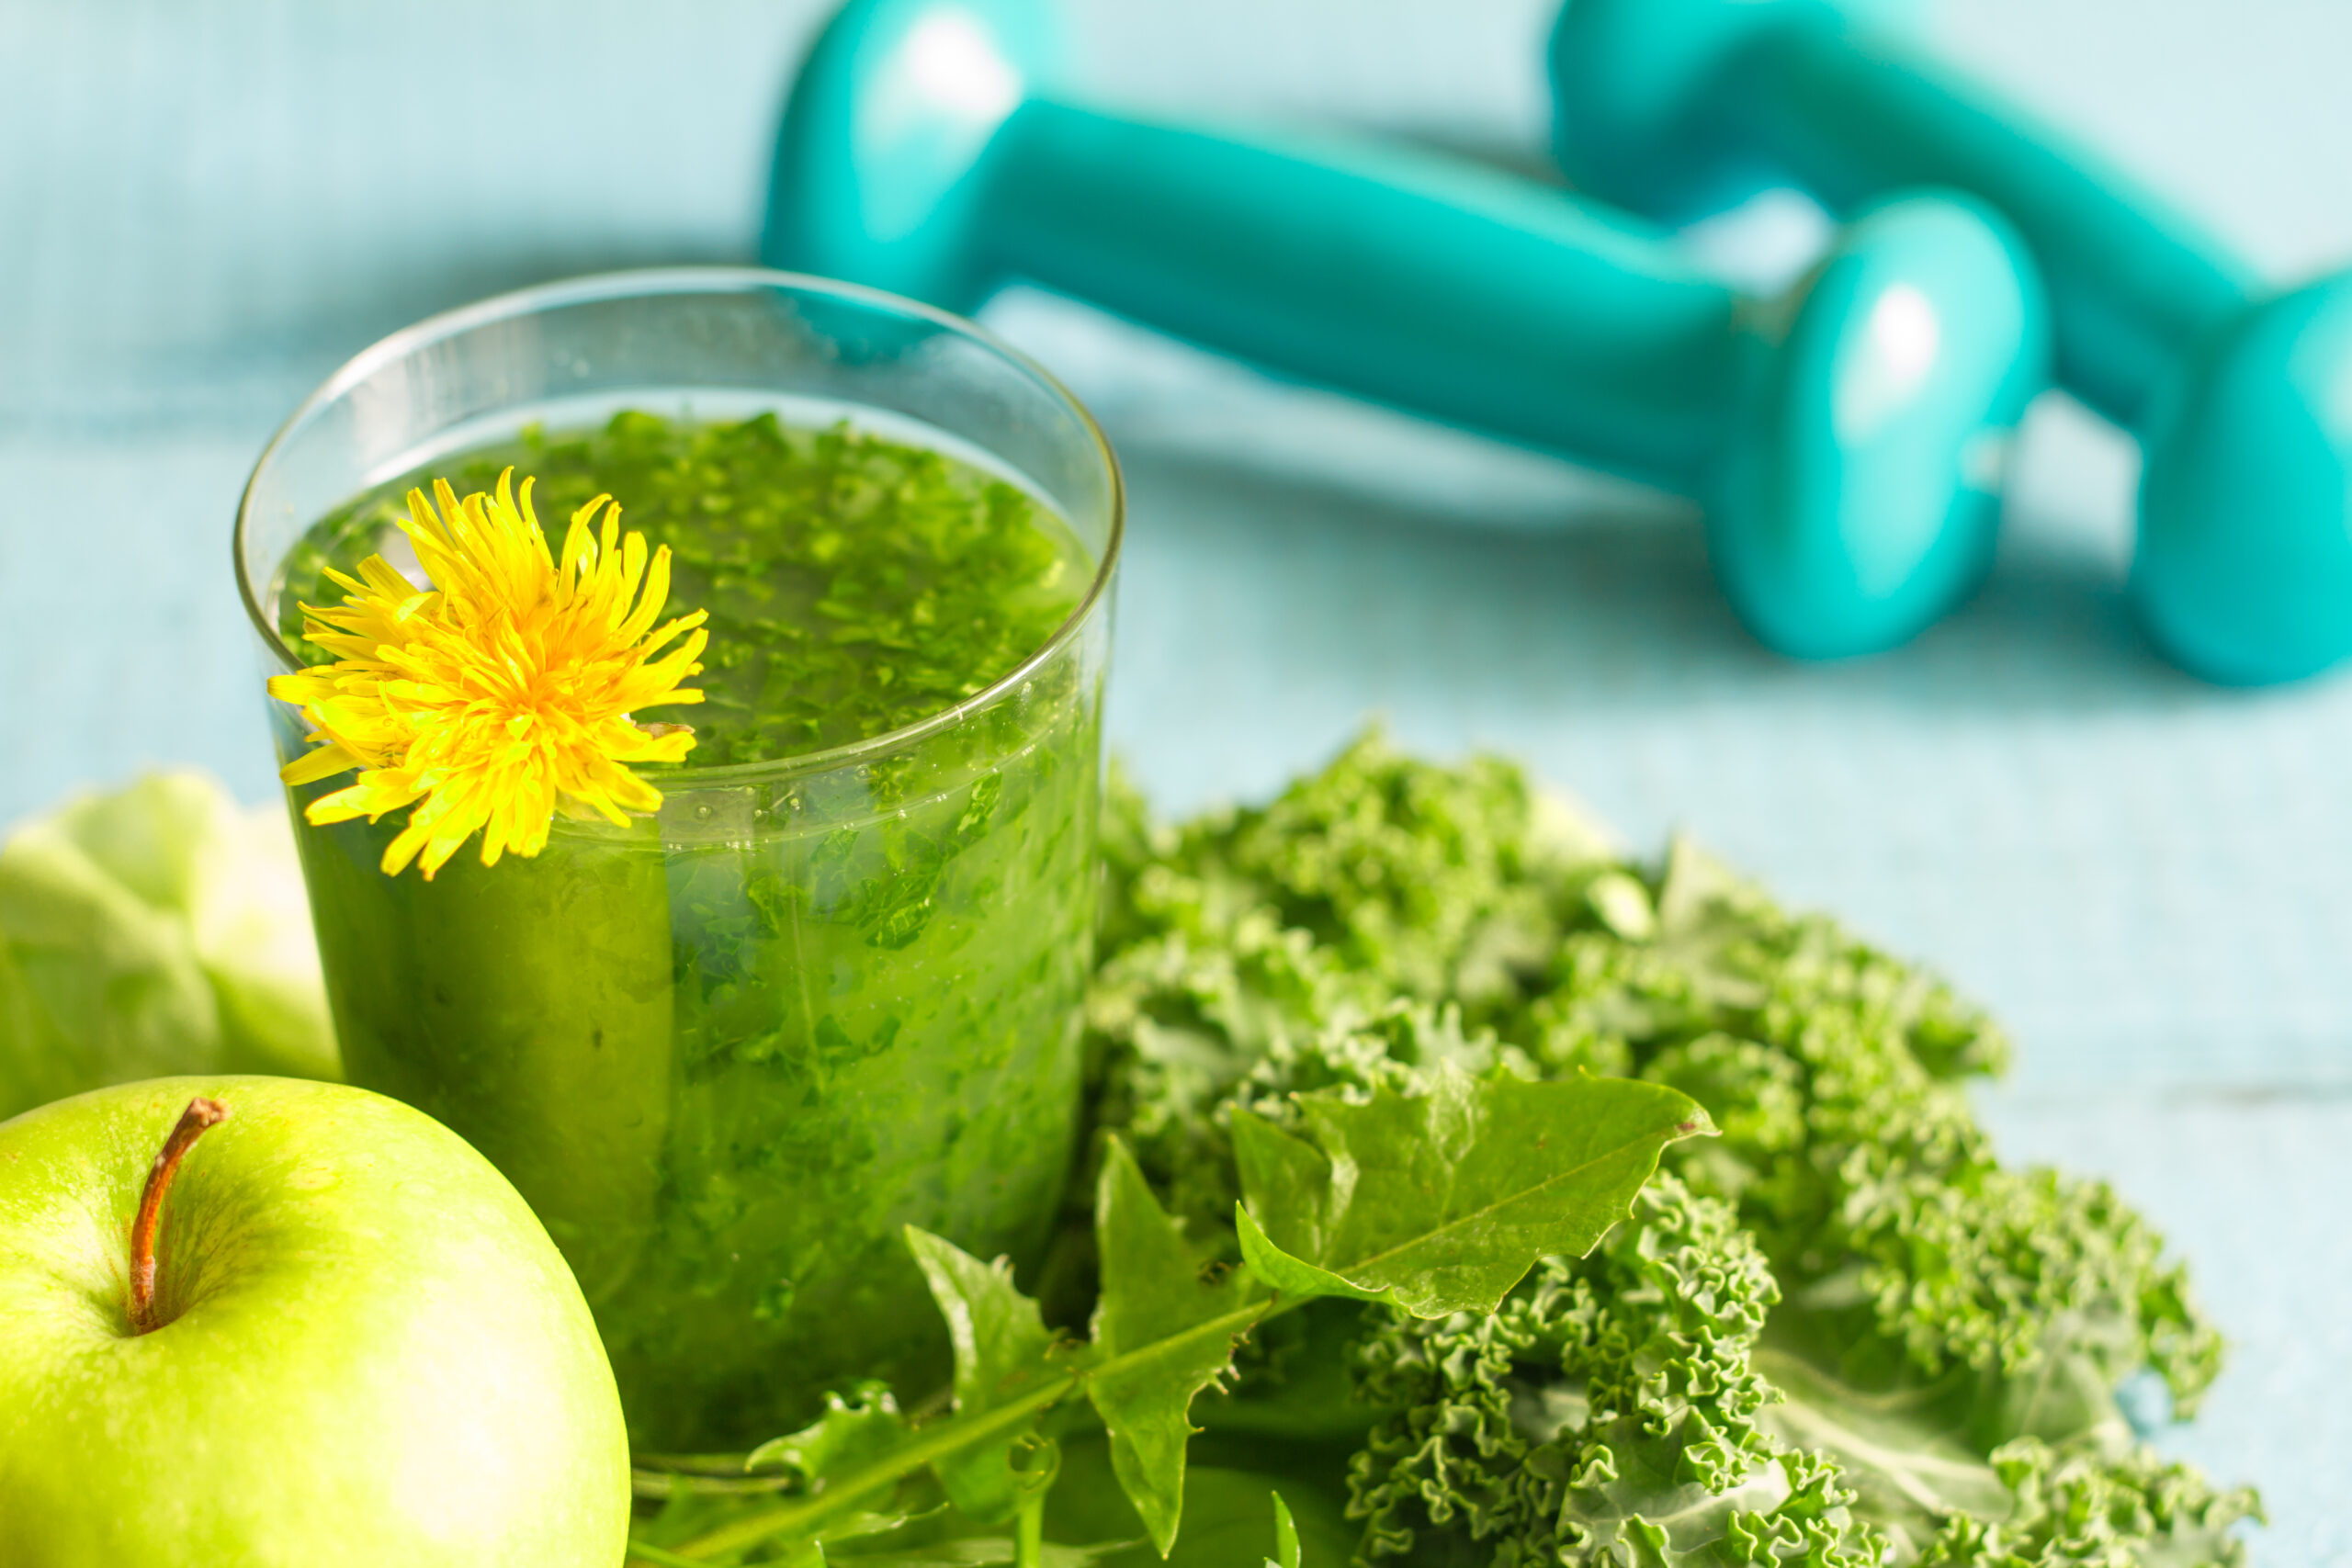 Green,Smoothie,With,Dandelion,Healthy,Lifestyle,Concept